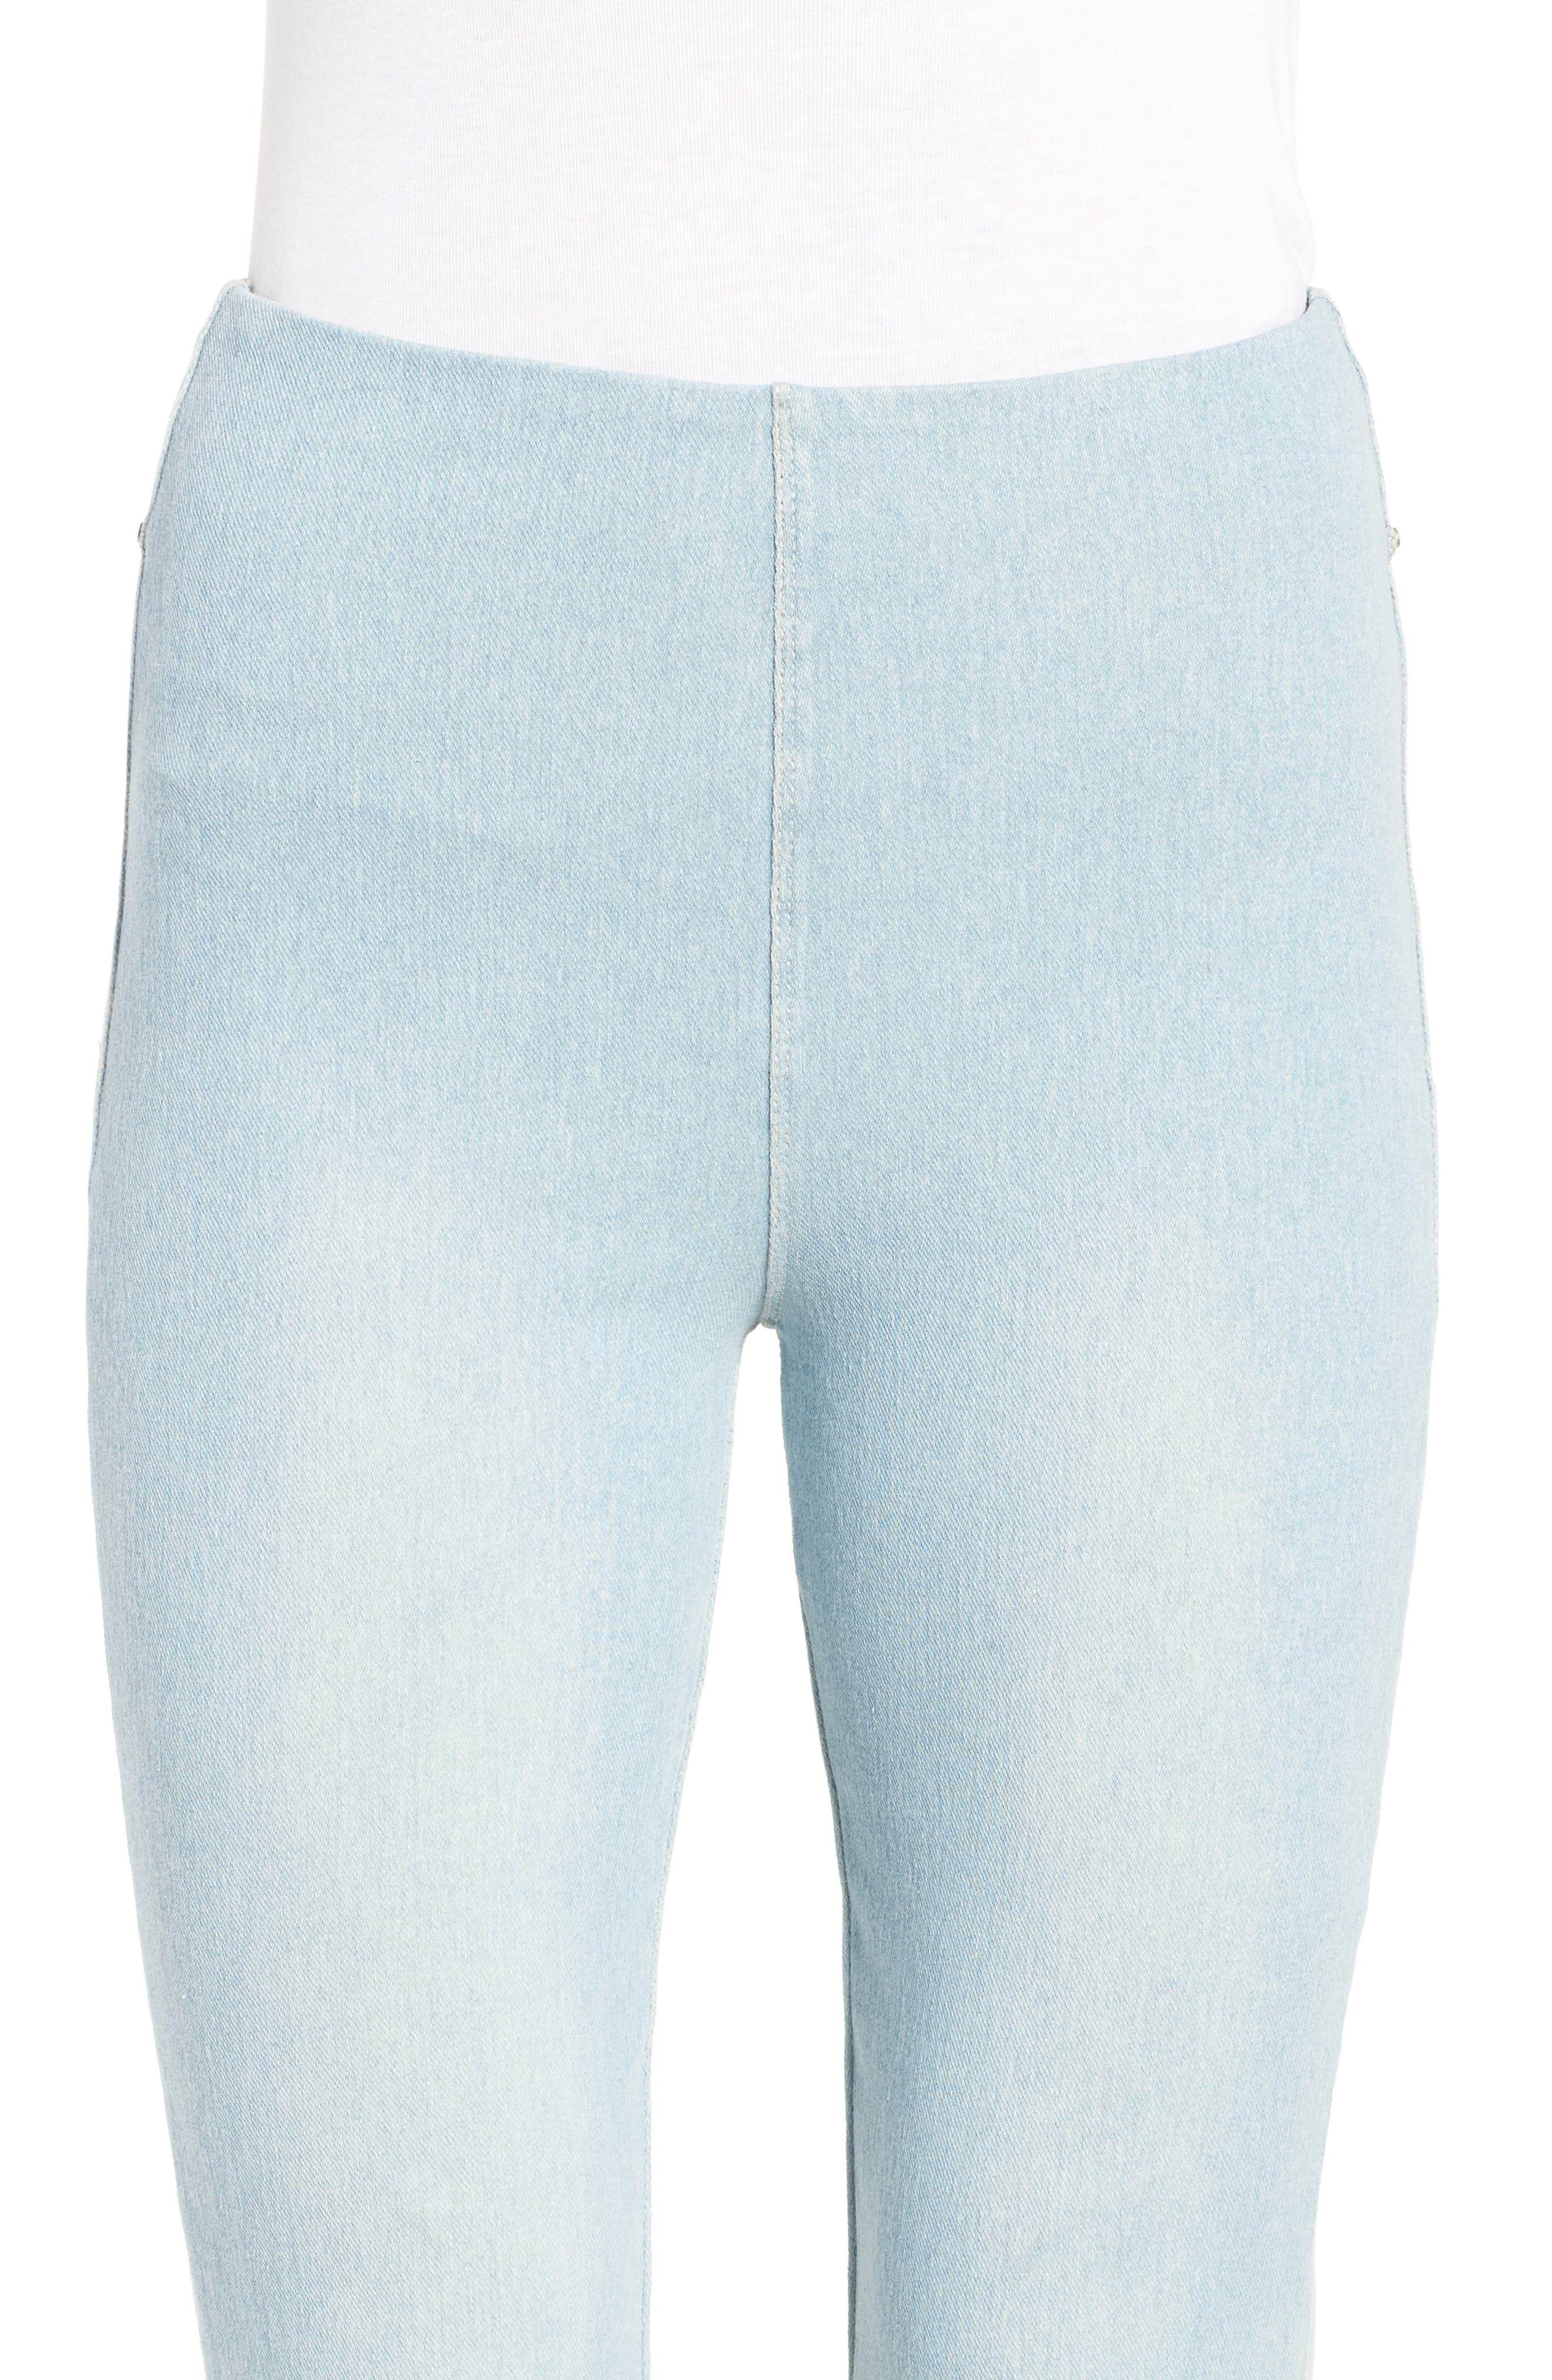 High Rise Flare Crop Leggings,                             Alternate thumbnail 4, color,                             Mineral Wash